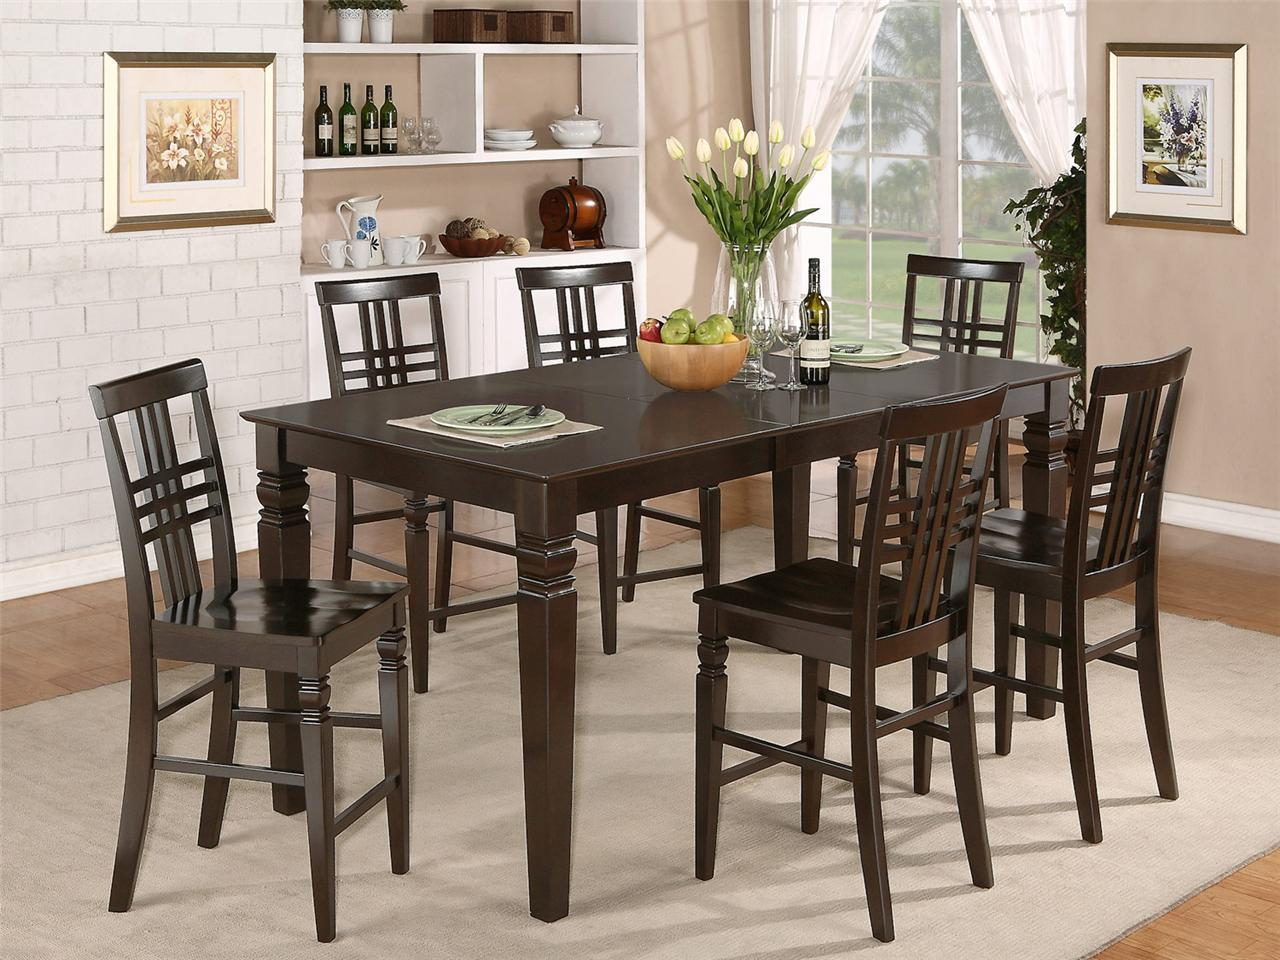 9pc rectangular counter height dining room table set 8 bar stool in cappuccino ebay - Height dining room table ...